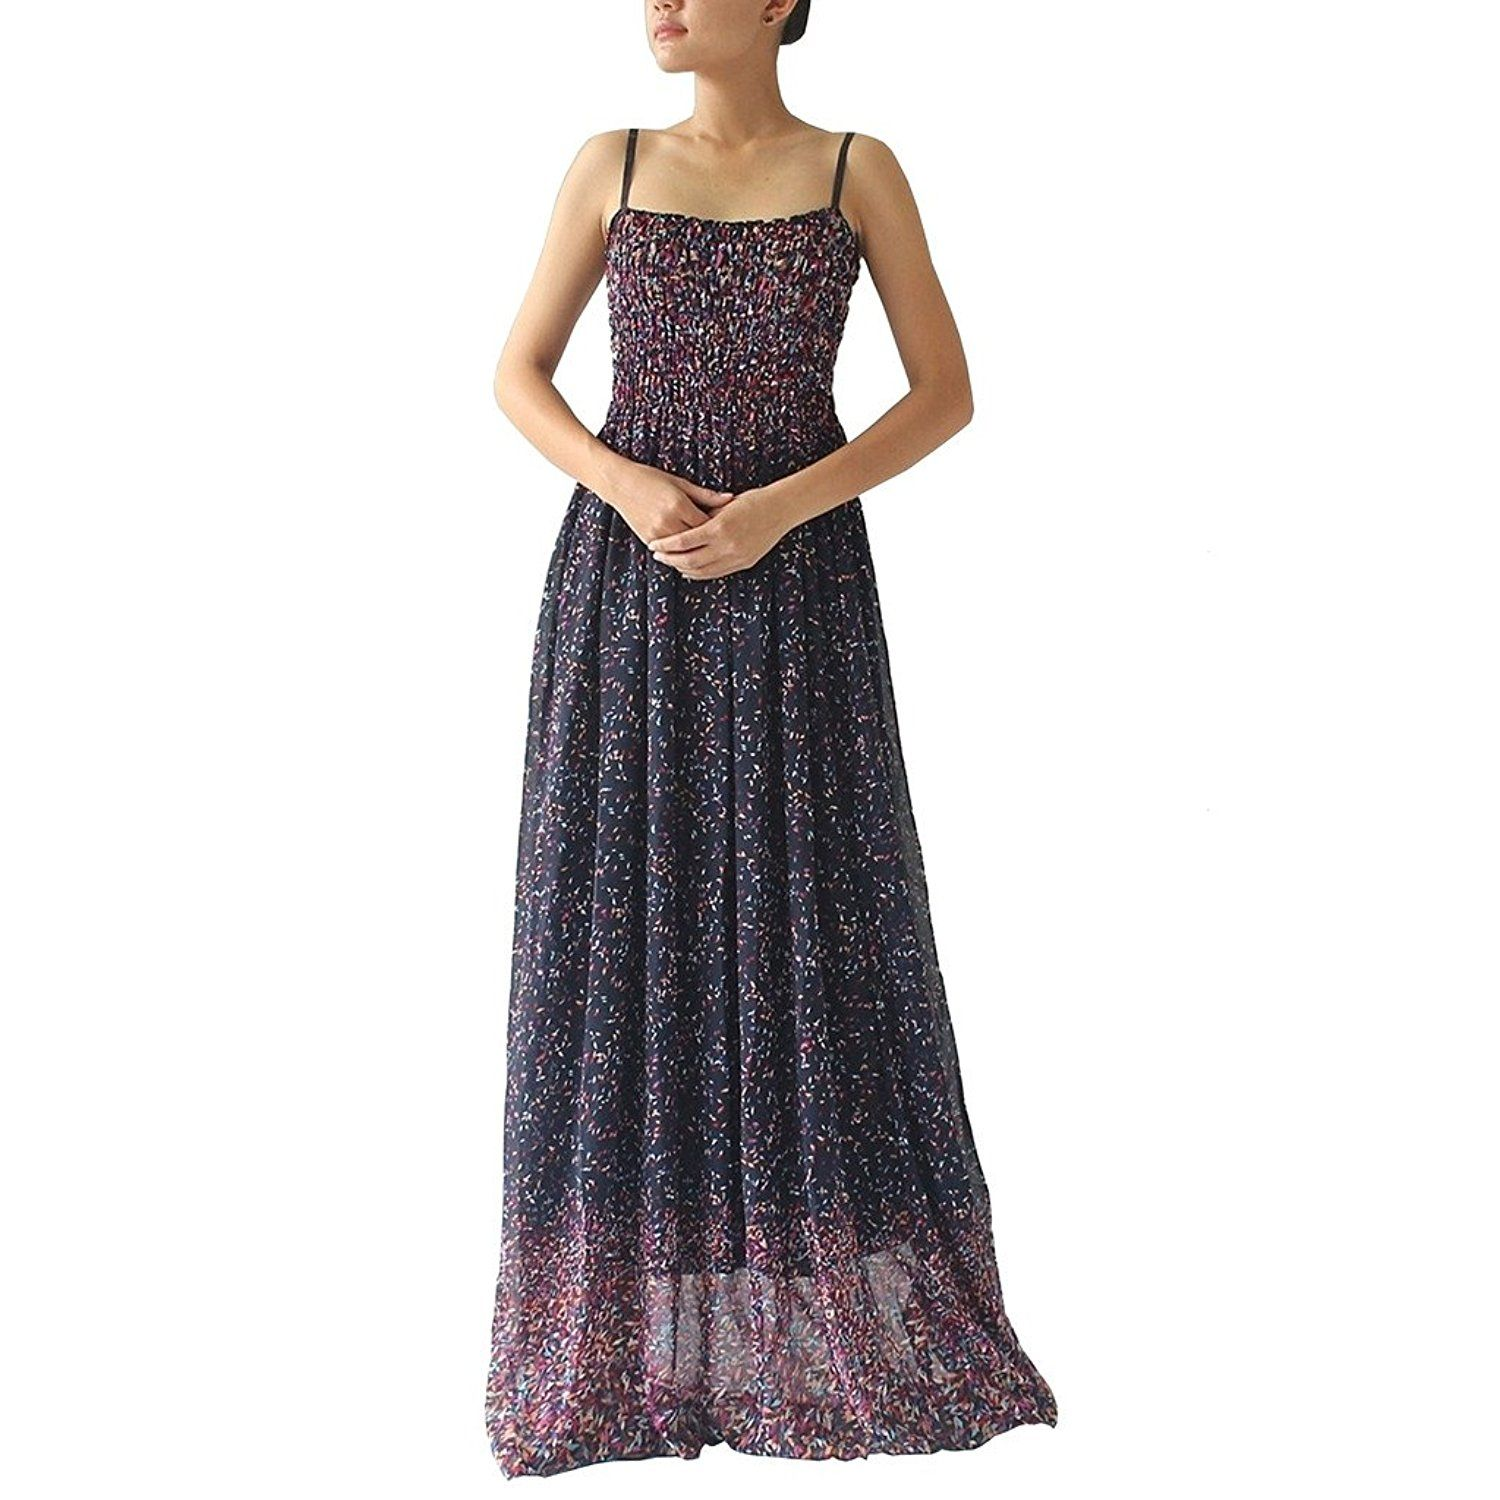 The Womenland Women Plus Size Clothing Maxi Strapy Summer Party Extra Long Dresses More Infor At The Link Of Womens Maxi Dresses Dresses Long Summer Dresses [ 1500 x 1500 Pixel ]